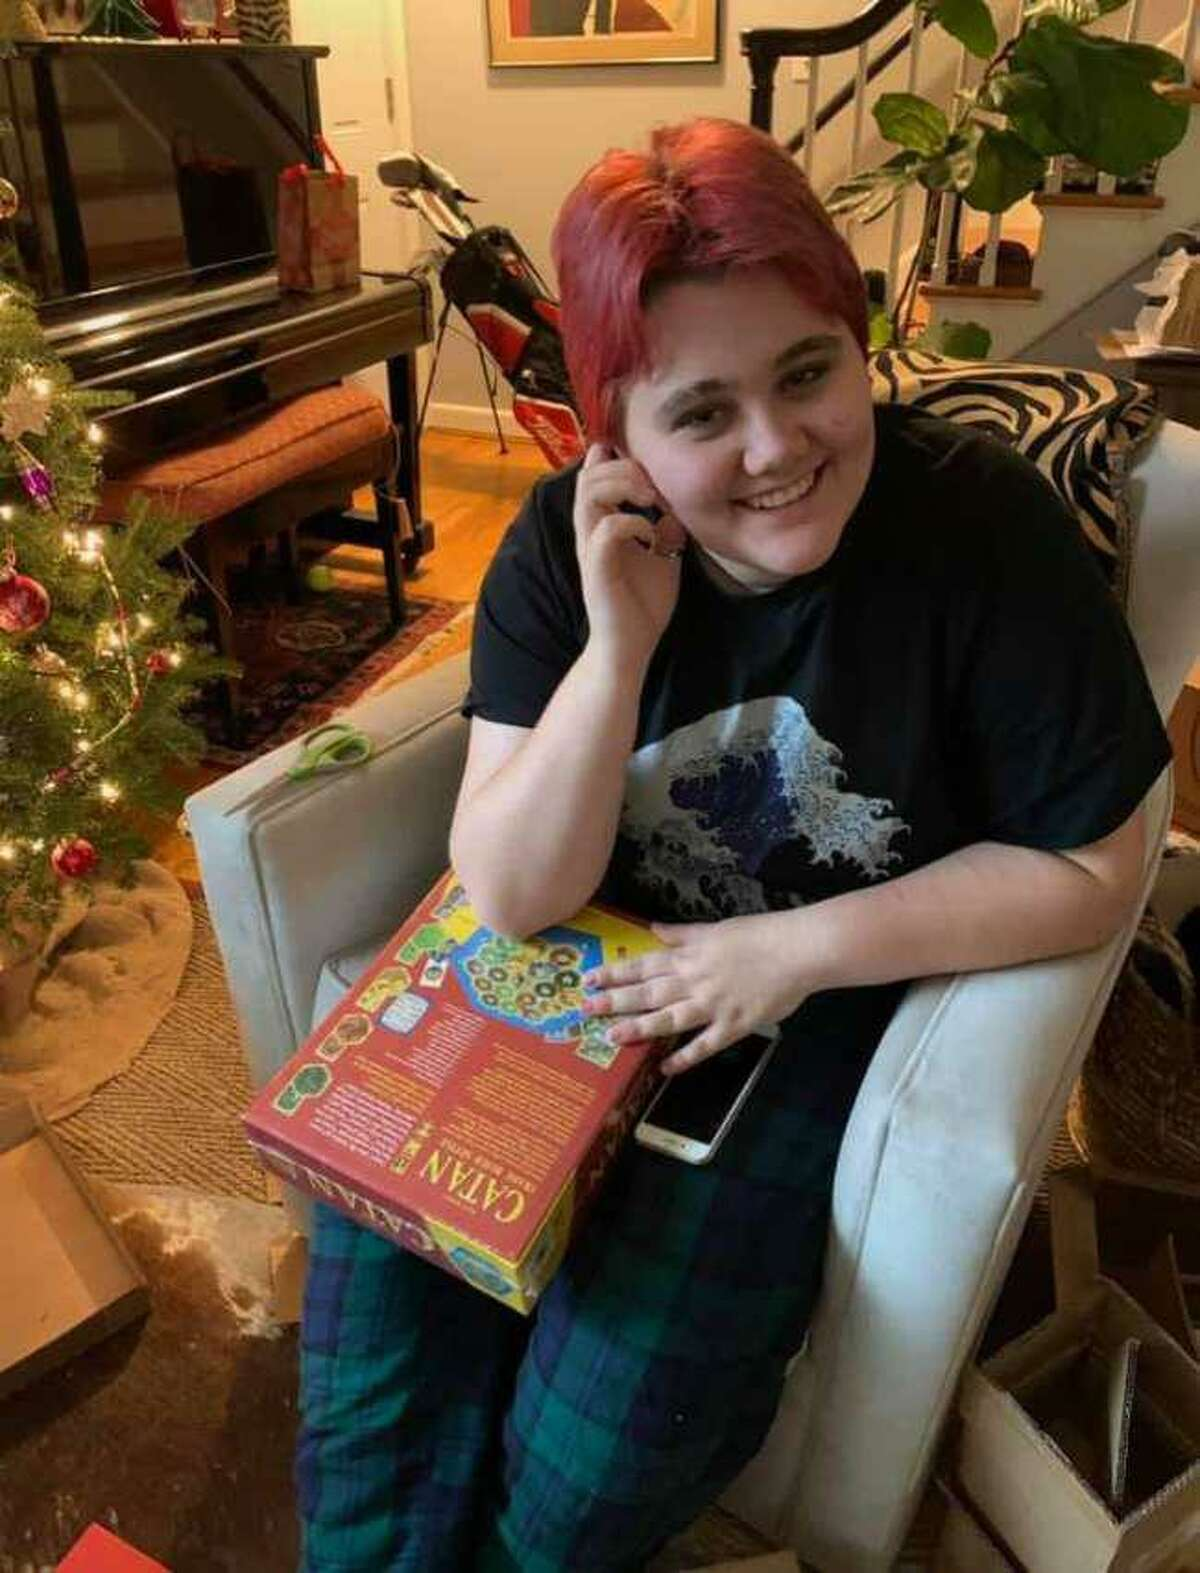 Ronan Hernsdorf-Smith was found safe in Chicopee, Massachusetts Thursday afternoon, police said. The teenager was missing since Aug. 30.